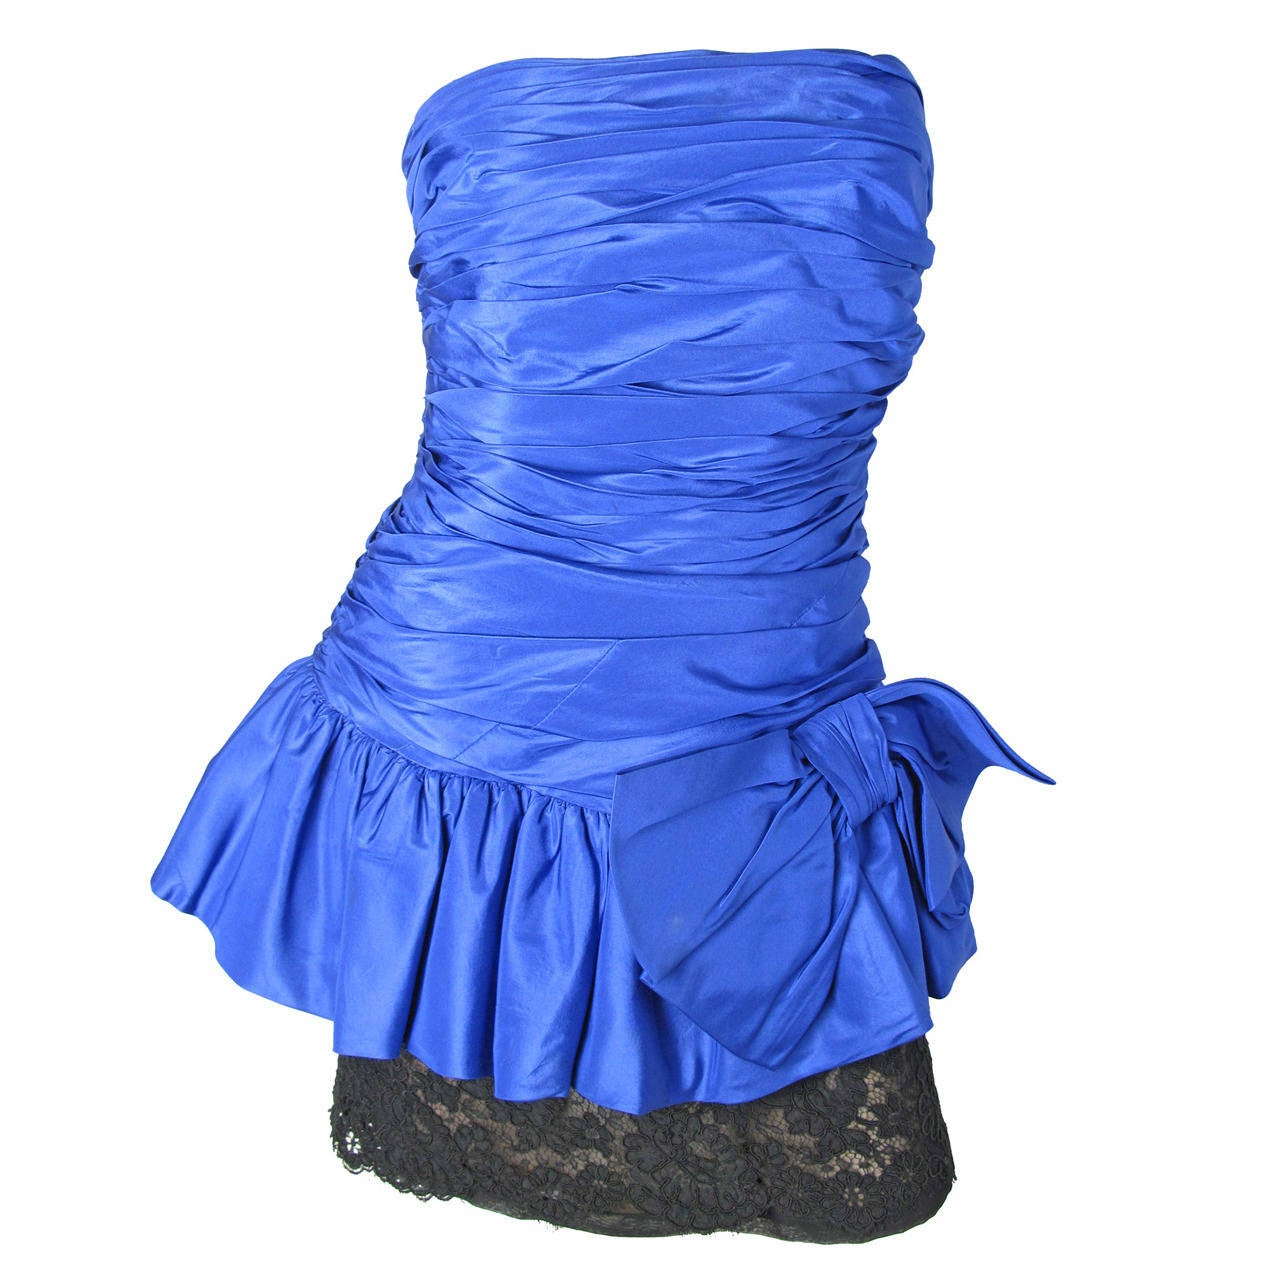 Oscar de la Renta blue taffeta and black lace strapless dress 1